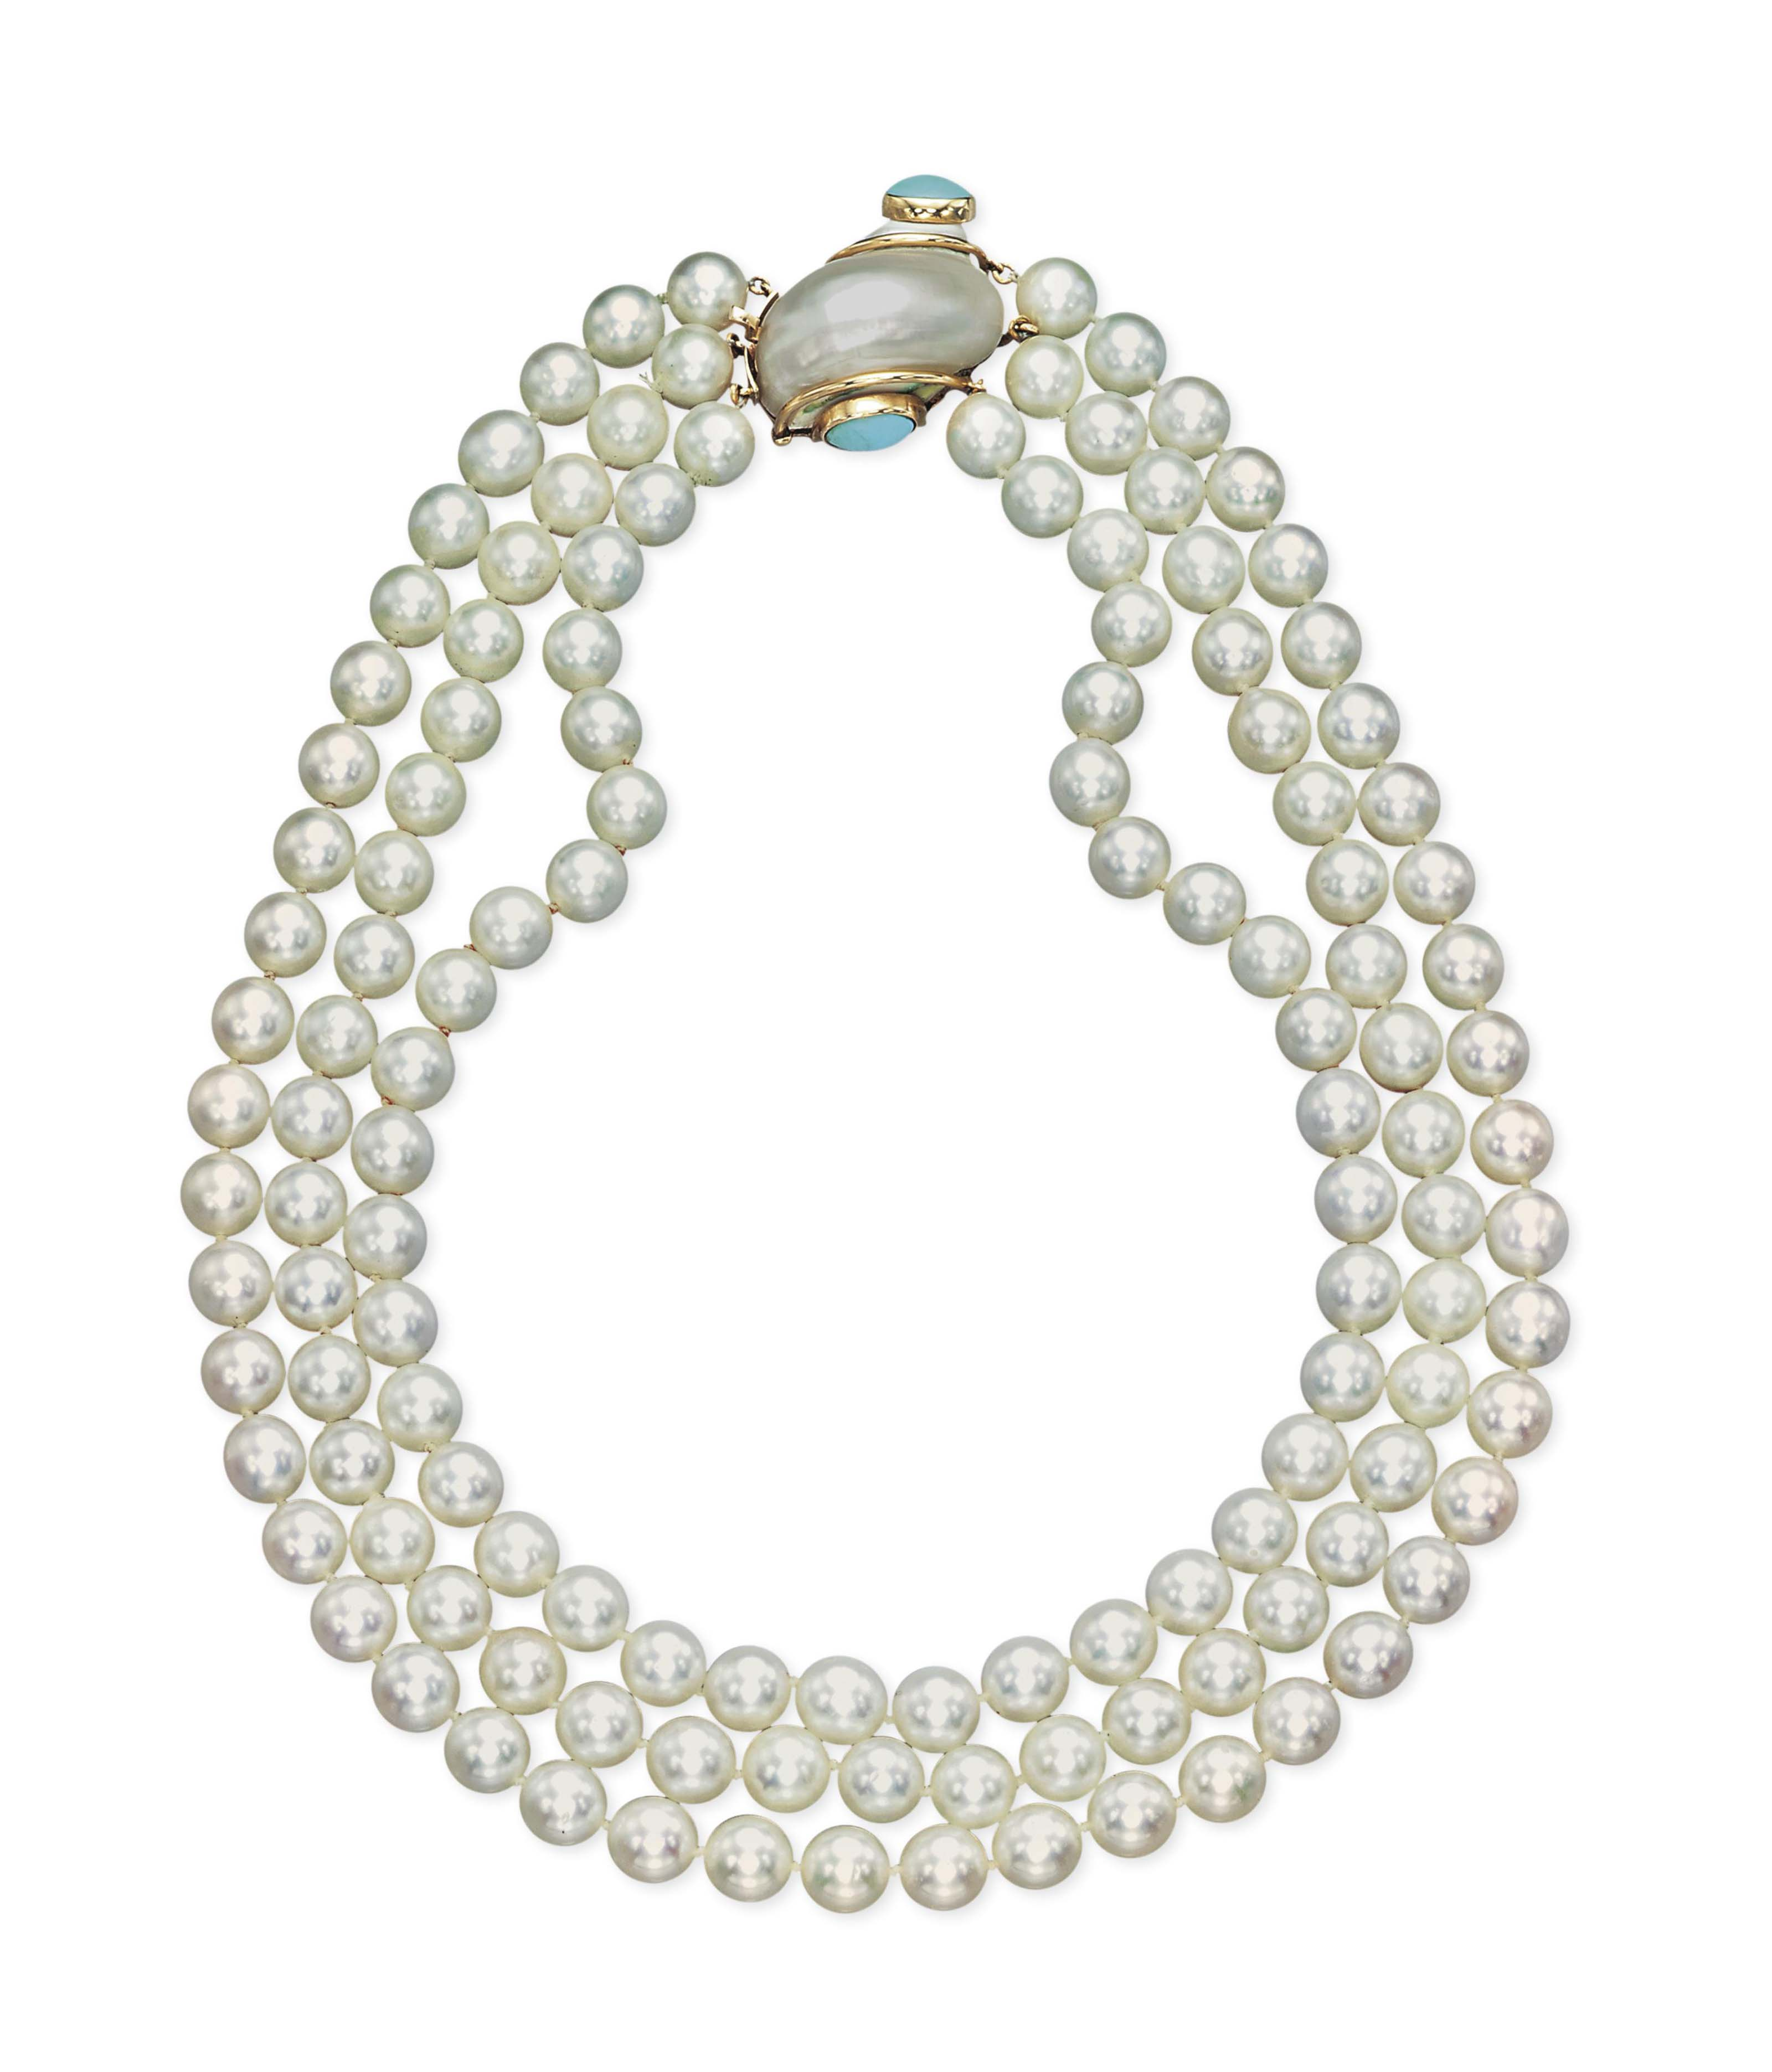 A CULTURED PEARL, SHELL AND TURQUOISE NECKLACE